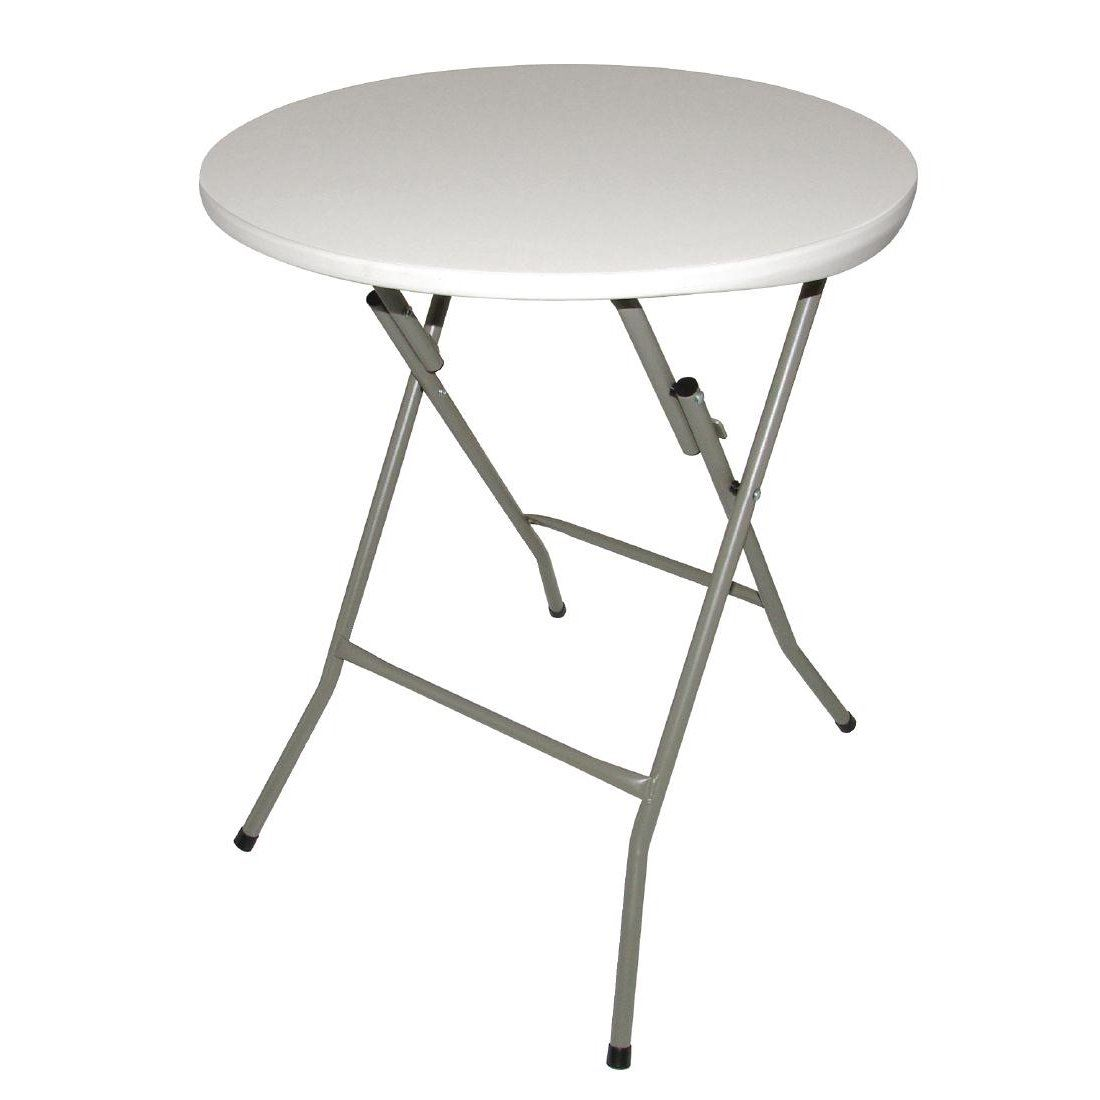 Table Polypropylène Details About Bolero Foldaway Round Table Polypropylene Top With Steel Frame 735 H X600mm